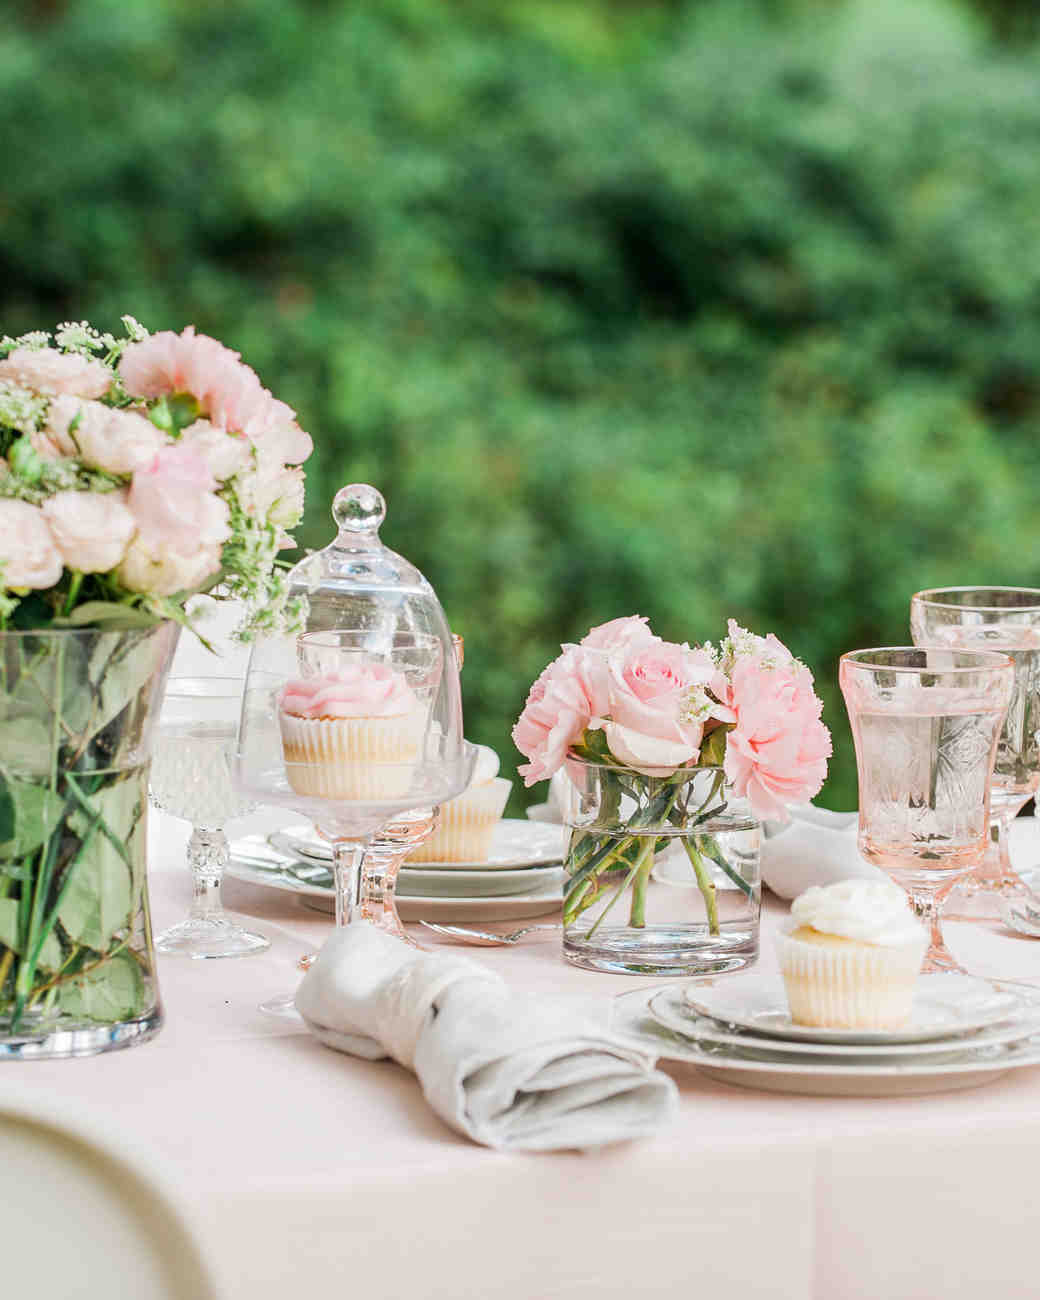 Coming Up Roses & The Prettiest Bridal Shower Centerpieces | Martha Stewart Weddings